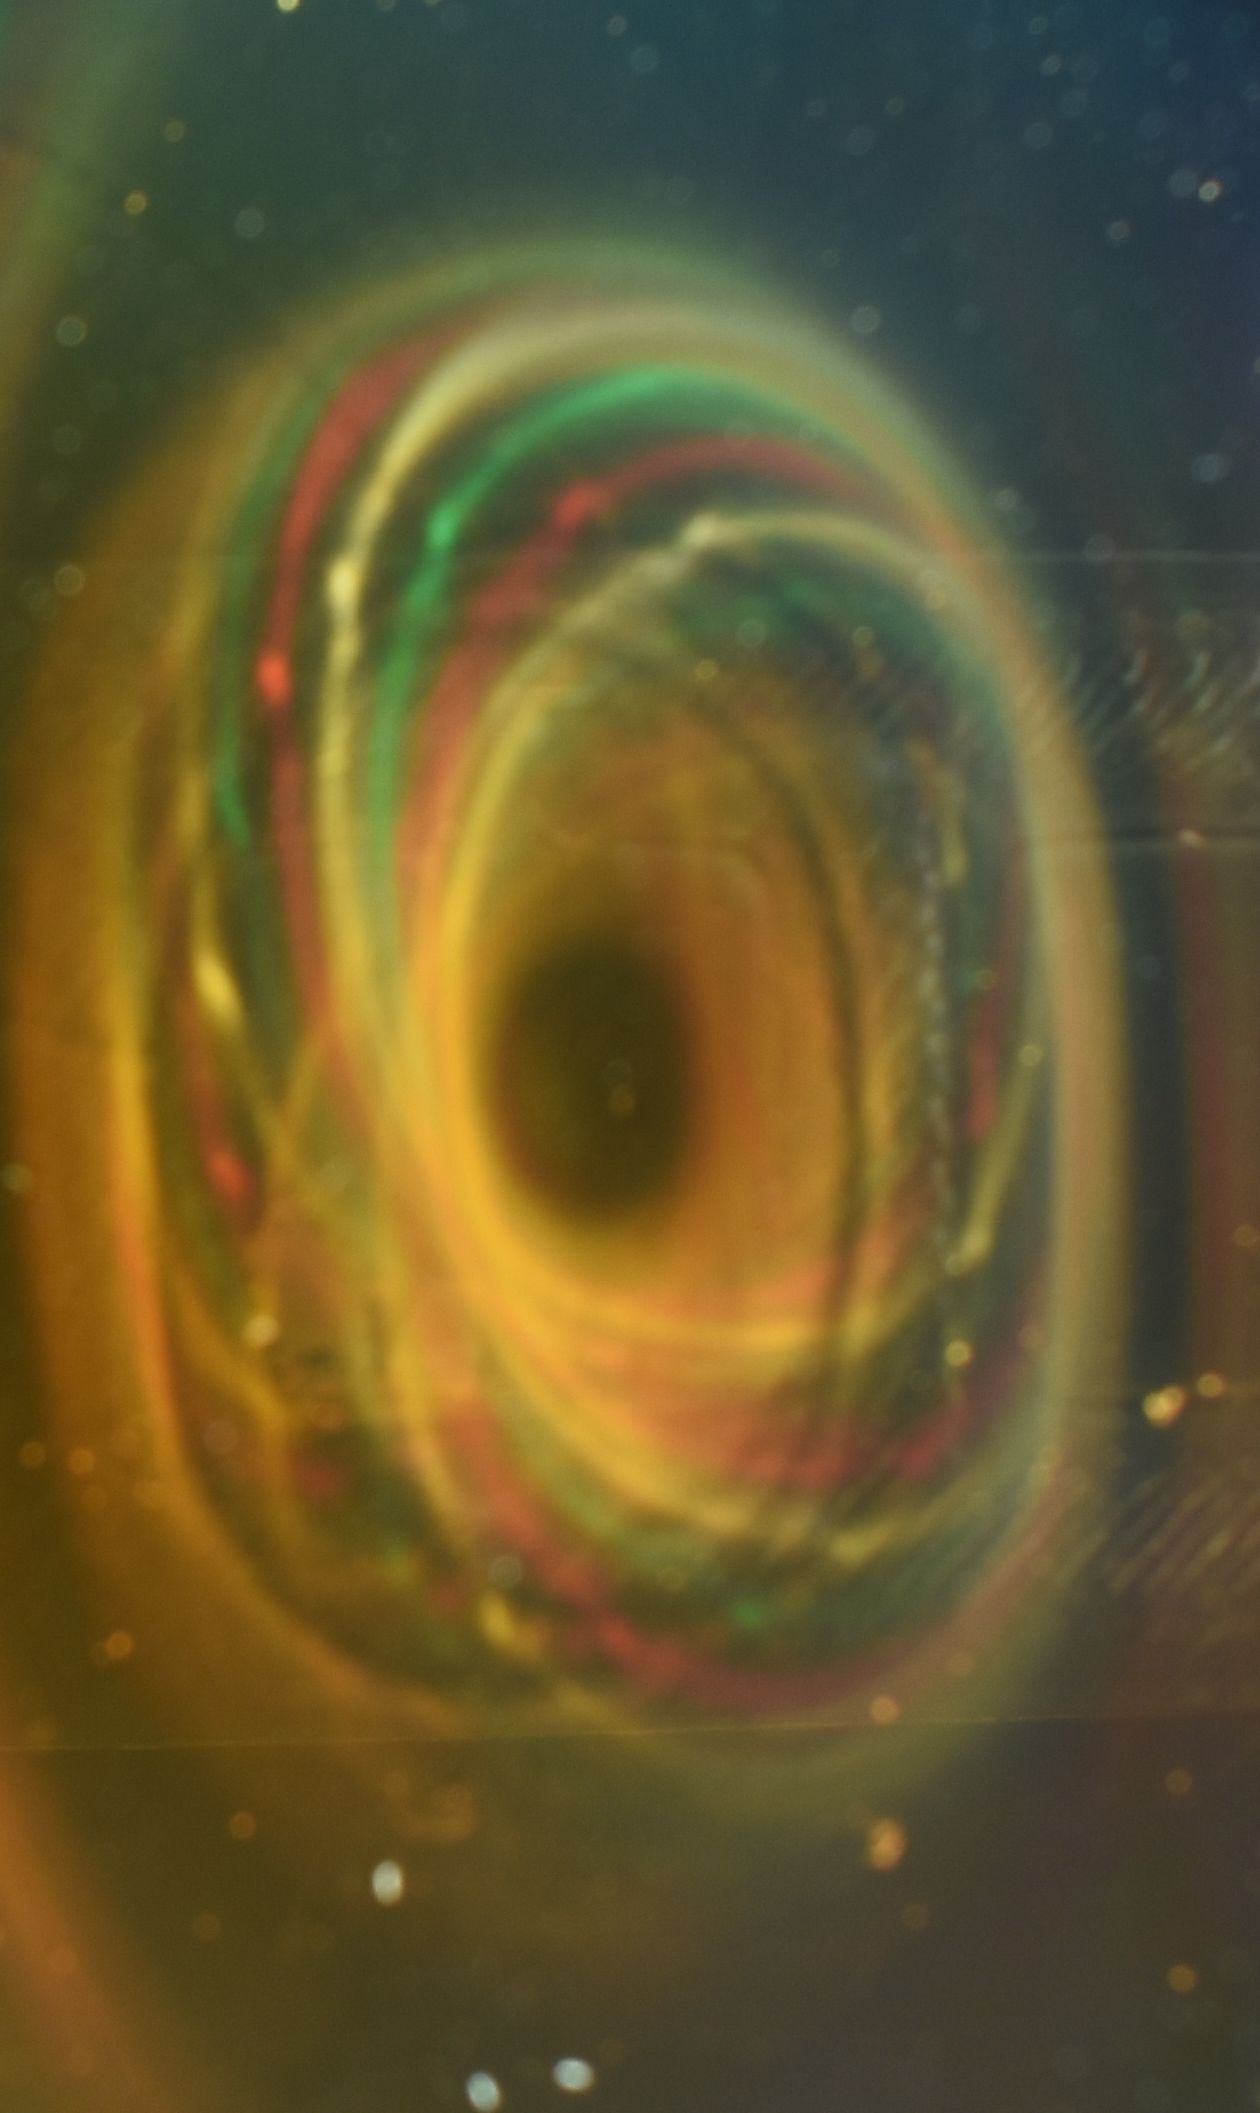 Magnetic Black Hole Image From One Magnetic Pole Of 5 Magnet